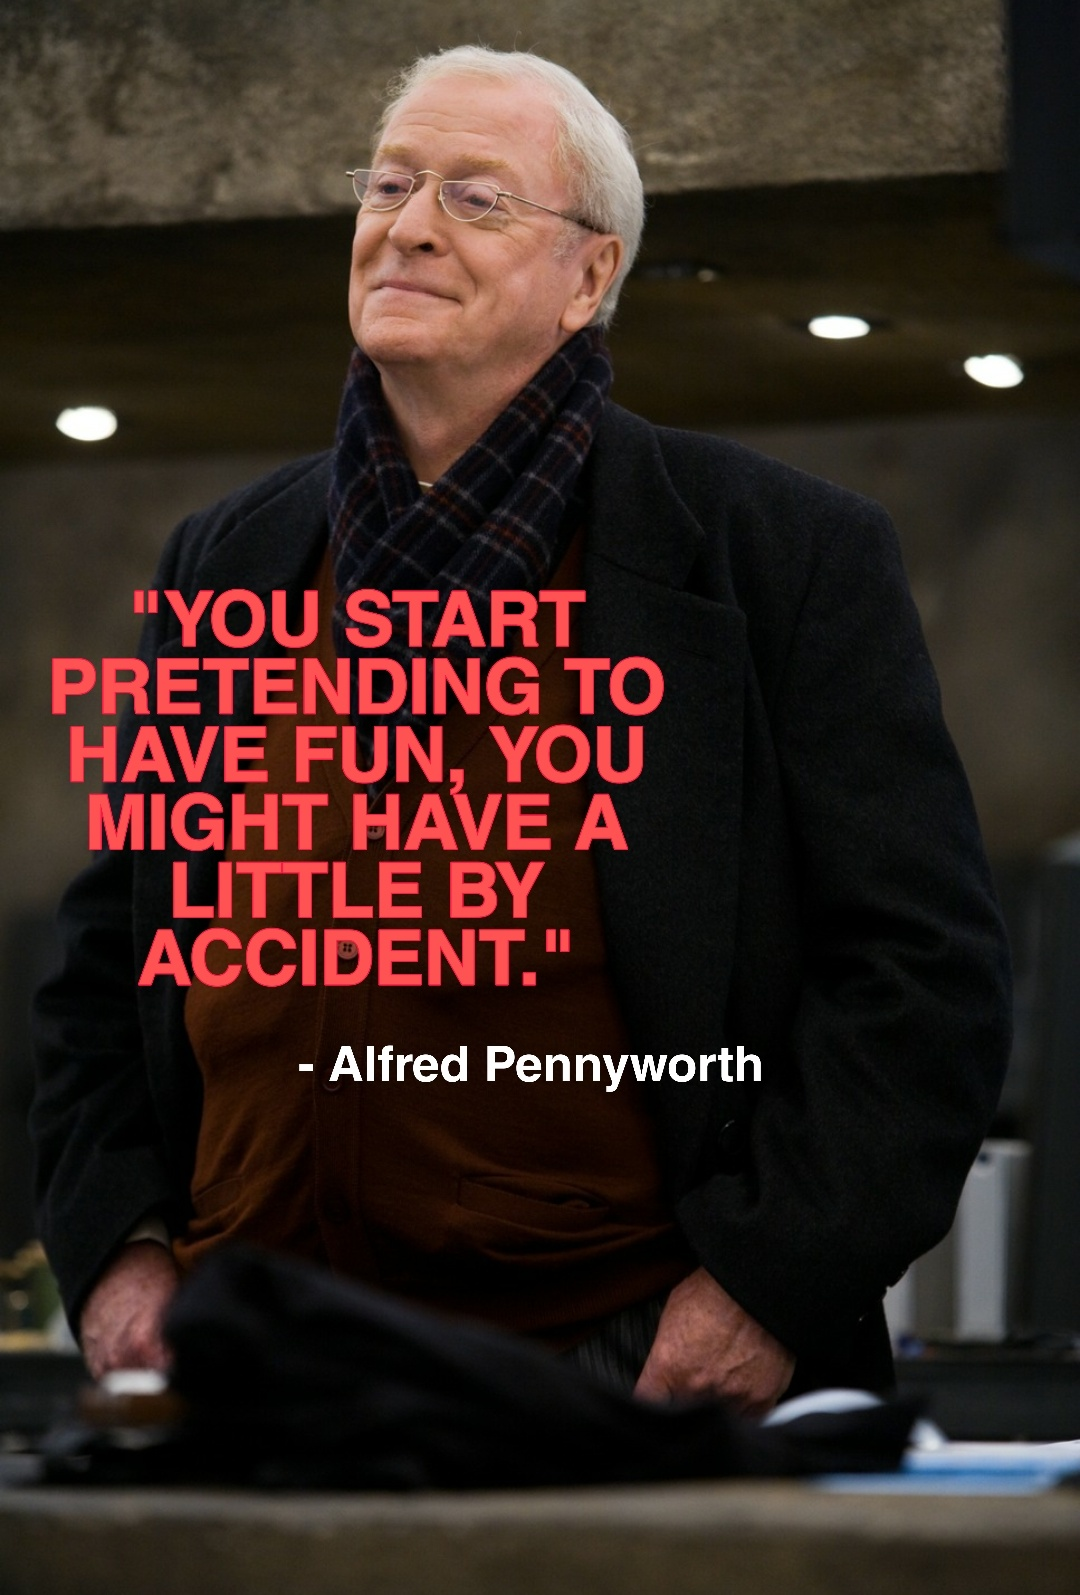 """YOU START PRETENDING TO HAVE FUN, YOU MIGHT HAVE A LITTLE BY ACCIDENT."" – Alfred Pennyworth [1080×1595]"